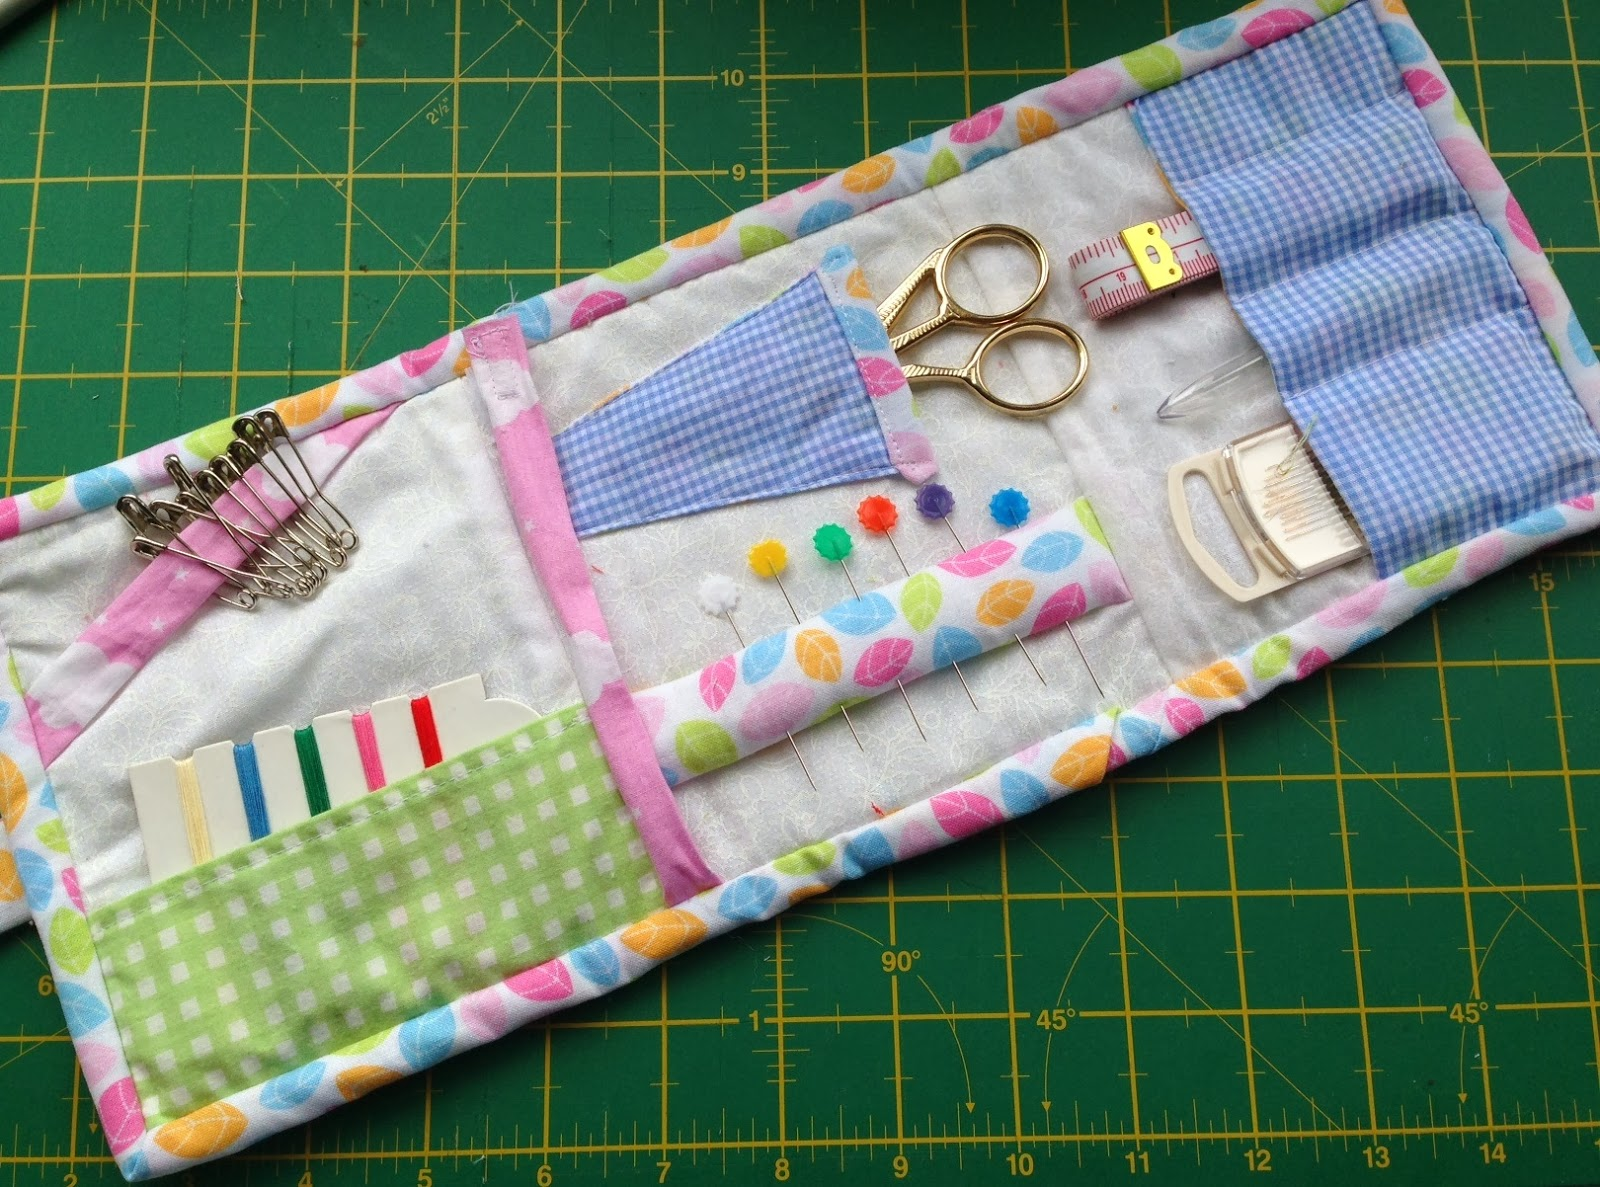 Download image Sewing Kits PC, Android, iPhone and iPad. Wallpapers ...